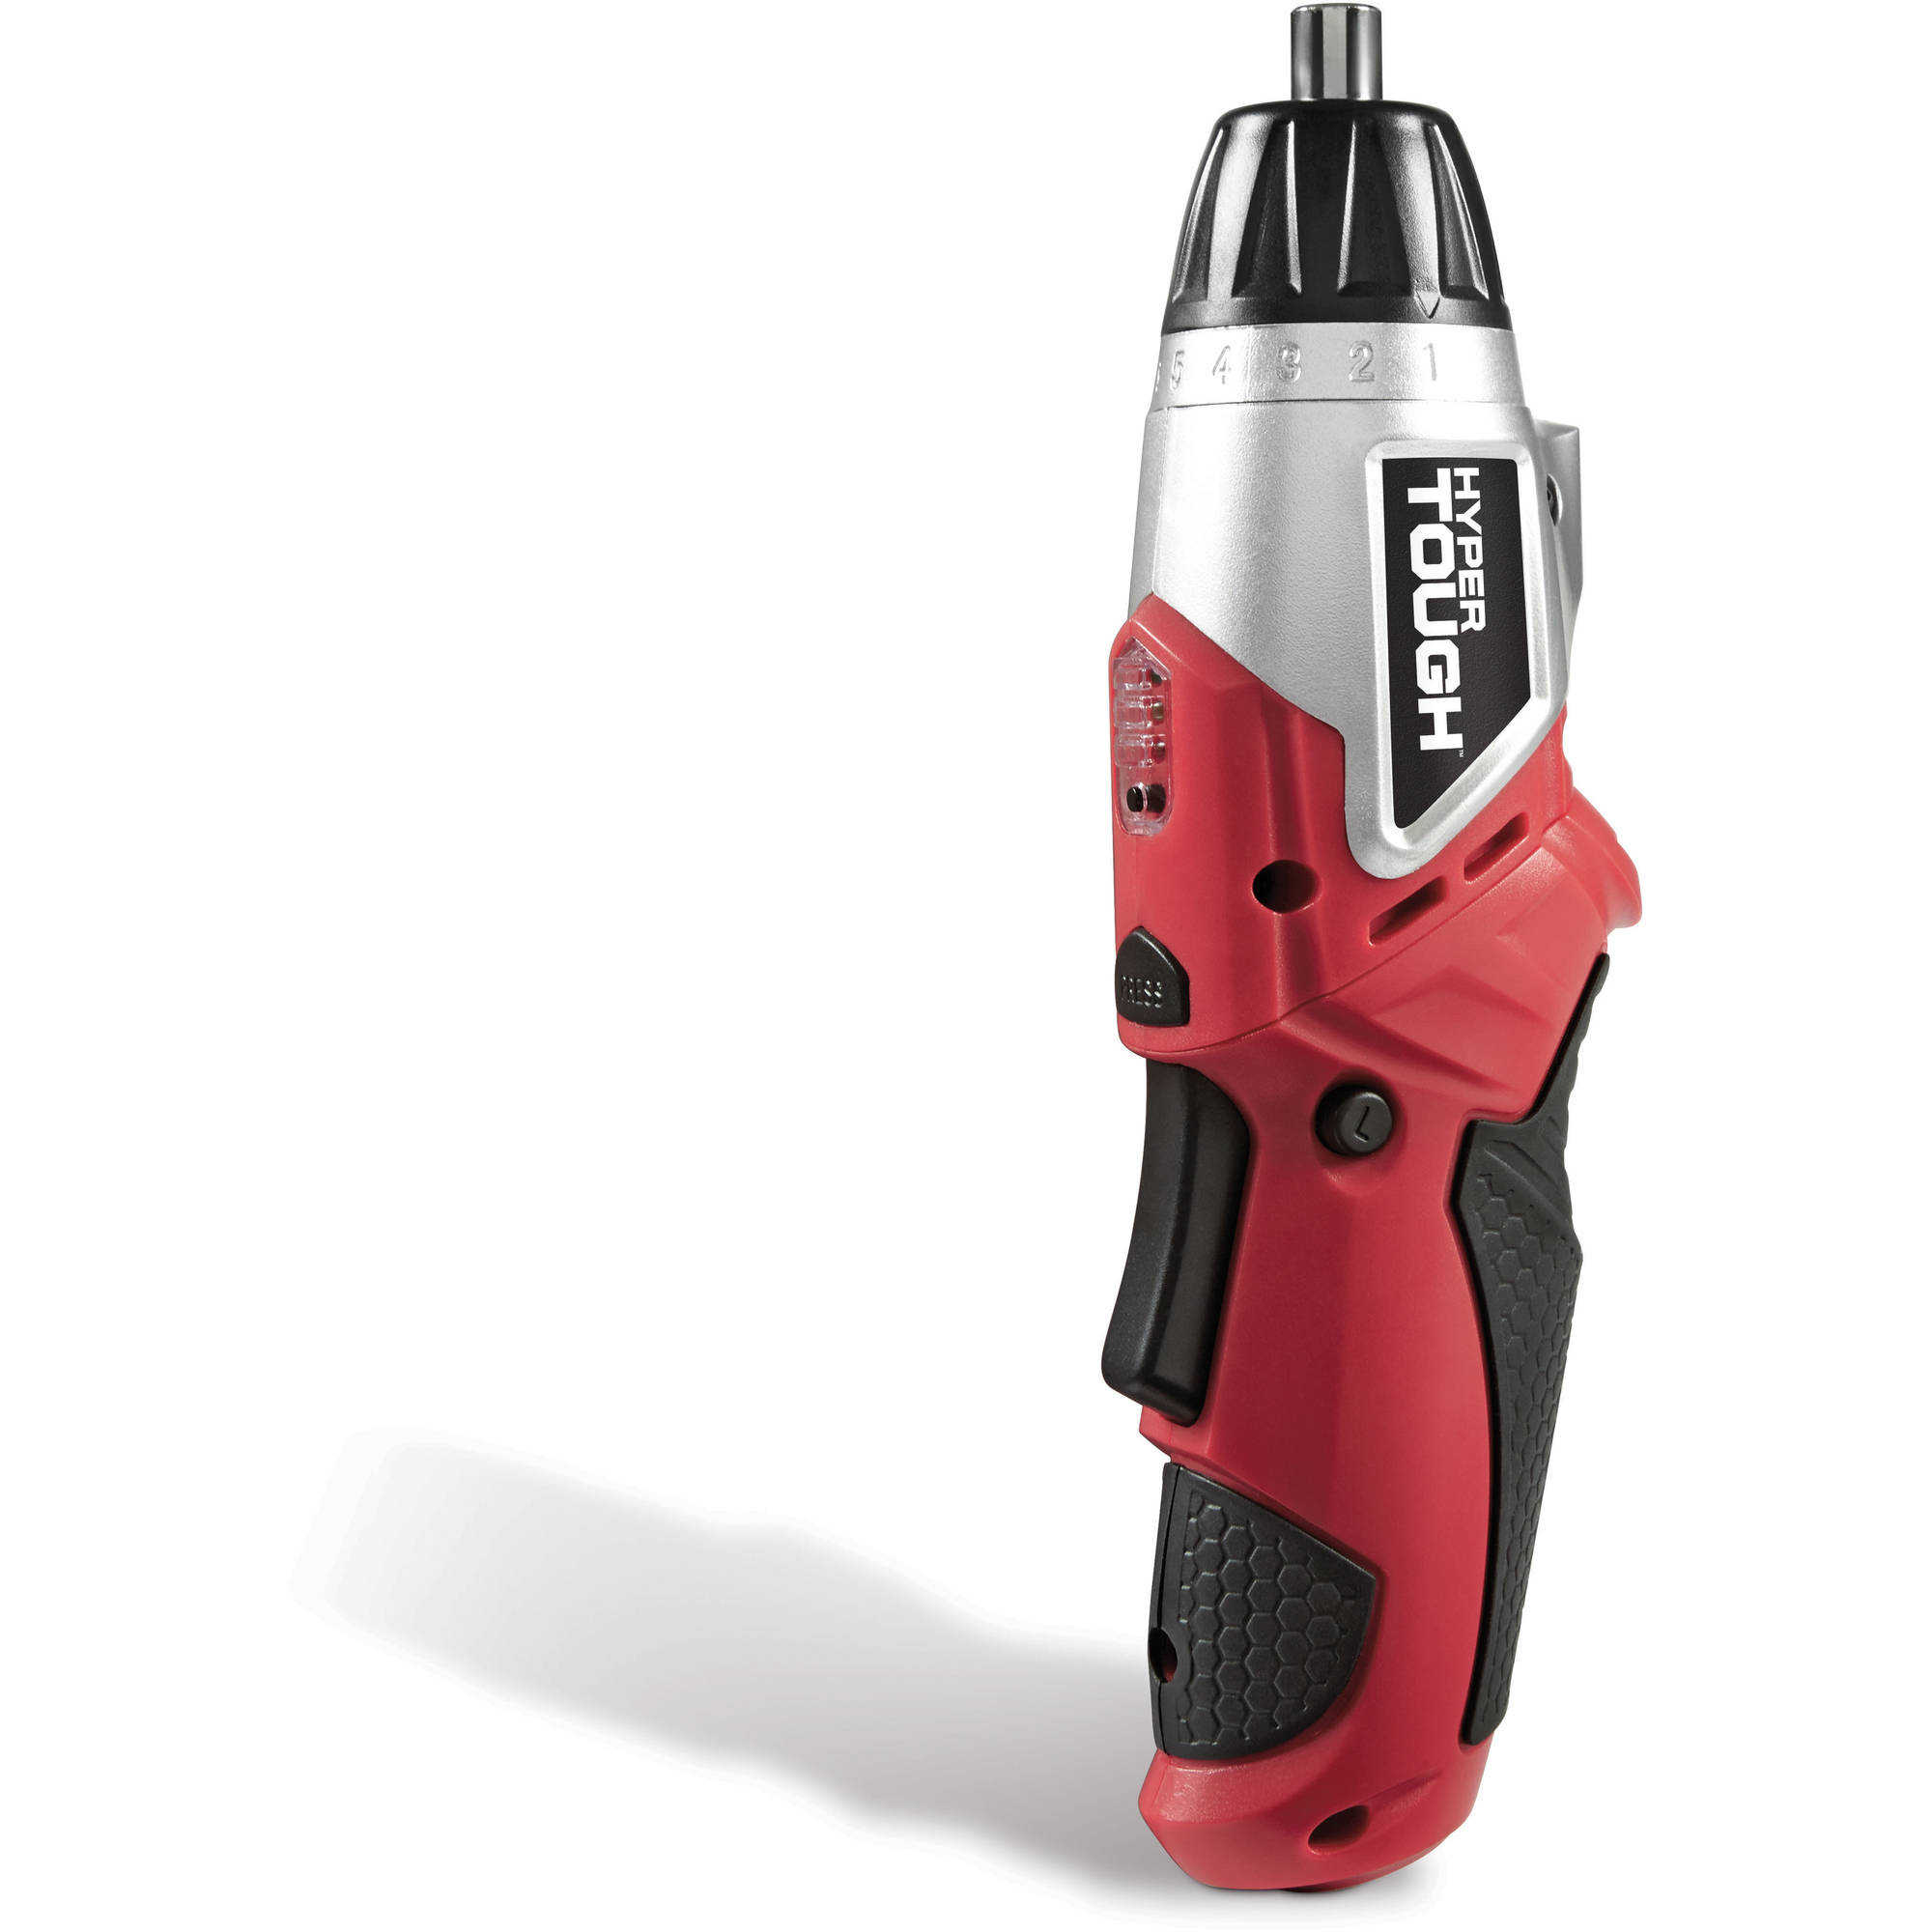 Hyper Tough 4-Volt Lithium-Ion Cordless Screwdriver